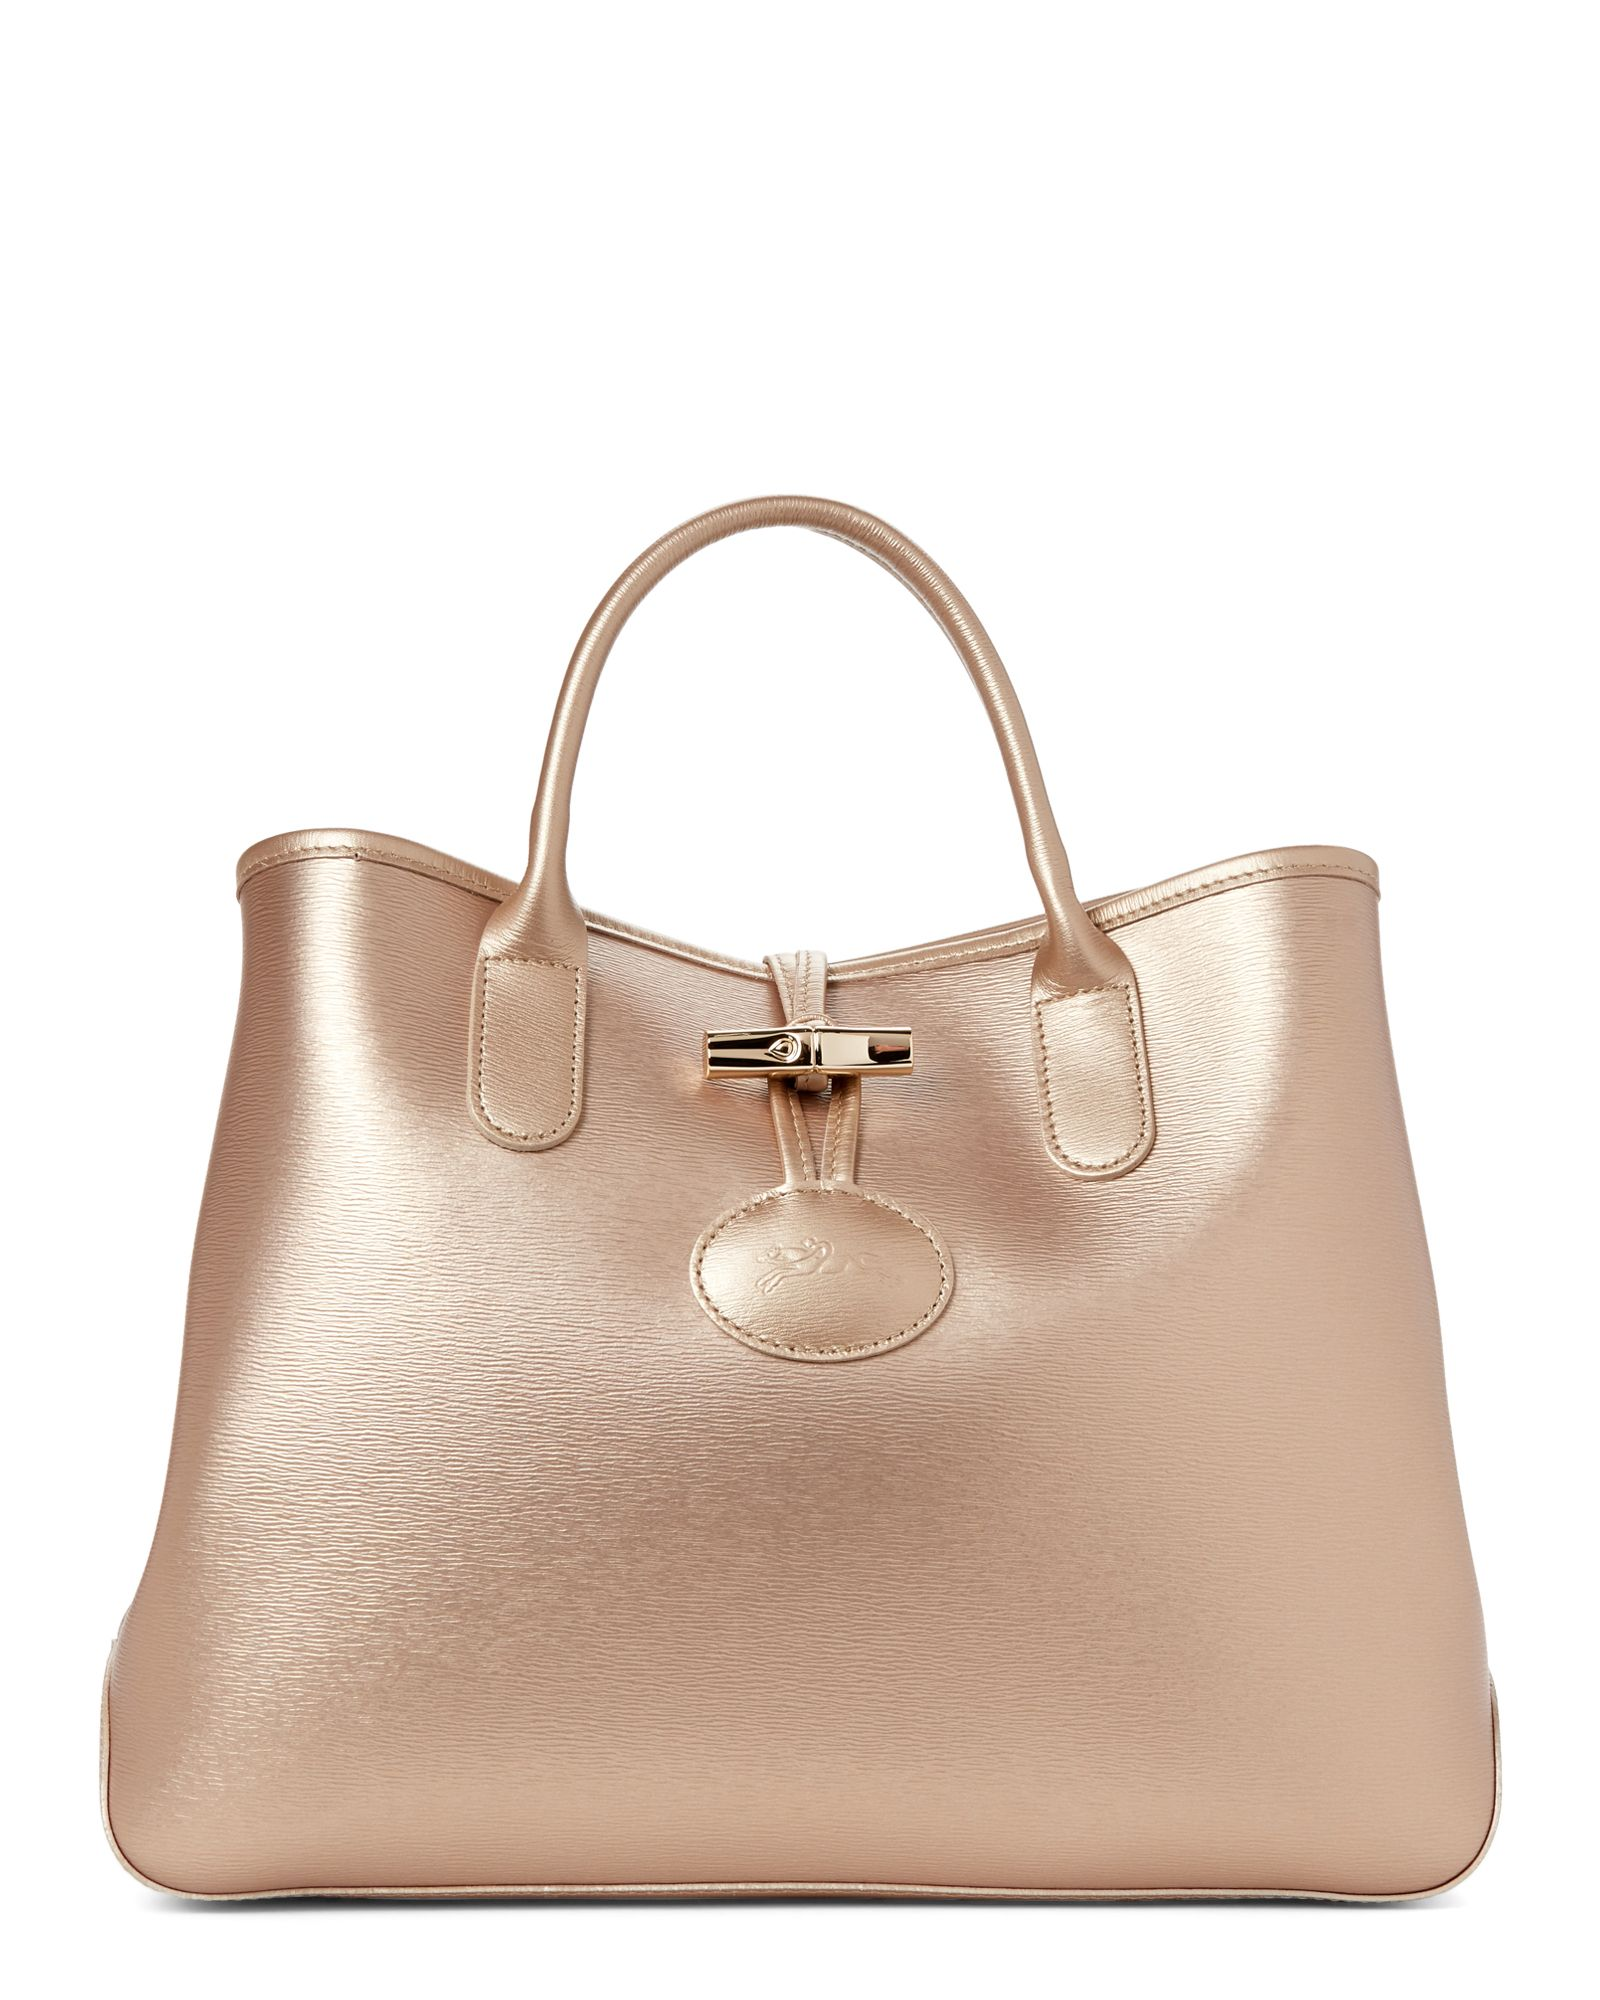 7854b147ced4 Longchamp Gold Roseau Small Leather Tote